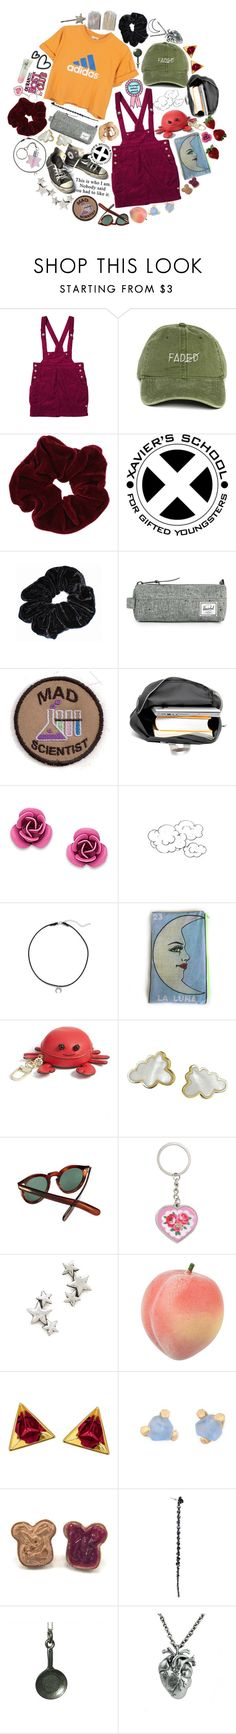 """""""Suburbs"""" by janalunamarie23 ❤ liked on Polyvore featuring Humör, adidas, Miss Selfridge, Topman, Converse, Dogeared, Tory Burch, Cutler and Gross, Cath Kidston and Avant Garde Paris"""